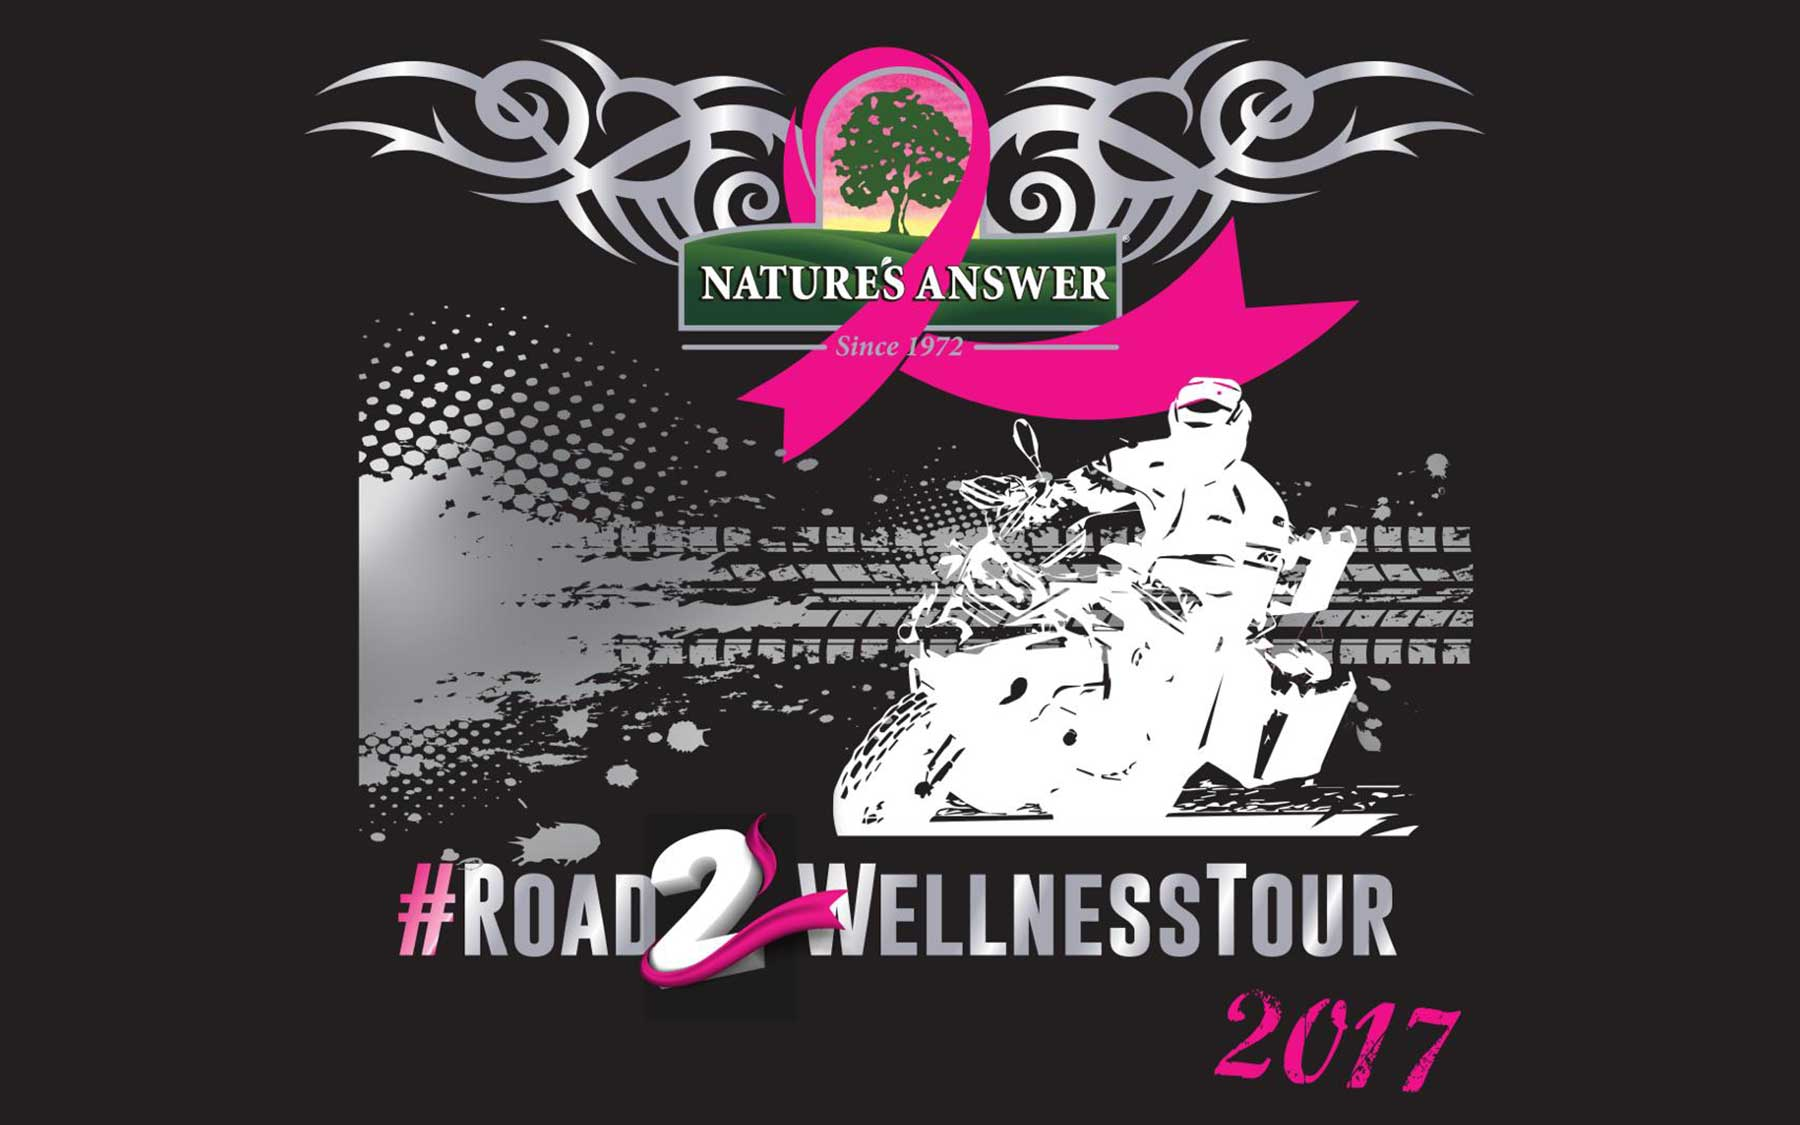 natures answer road 2 wellness tour